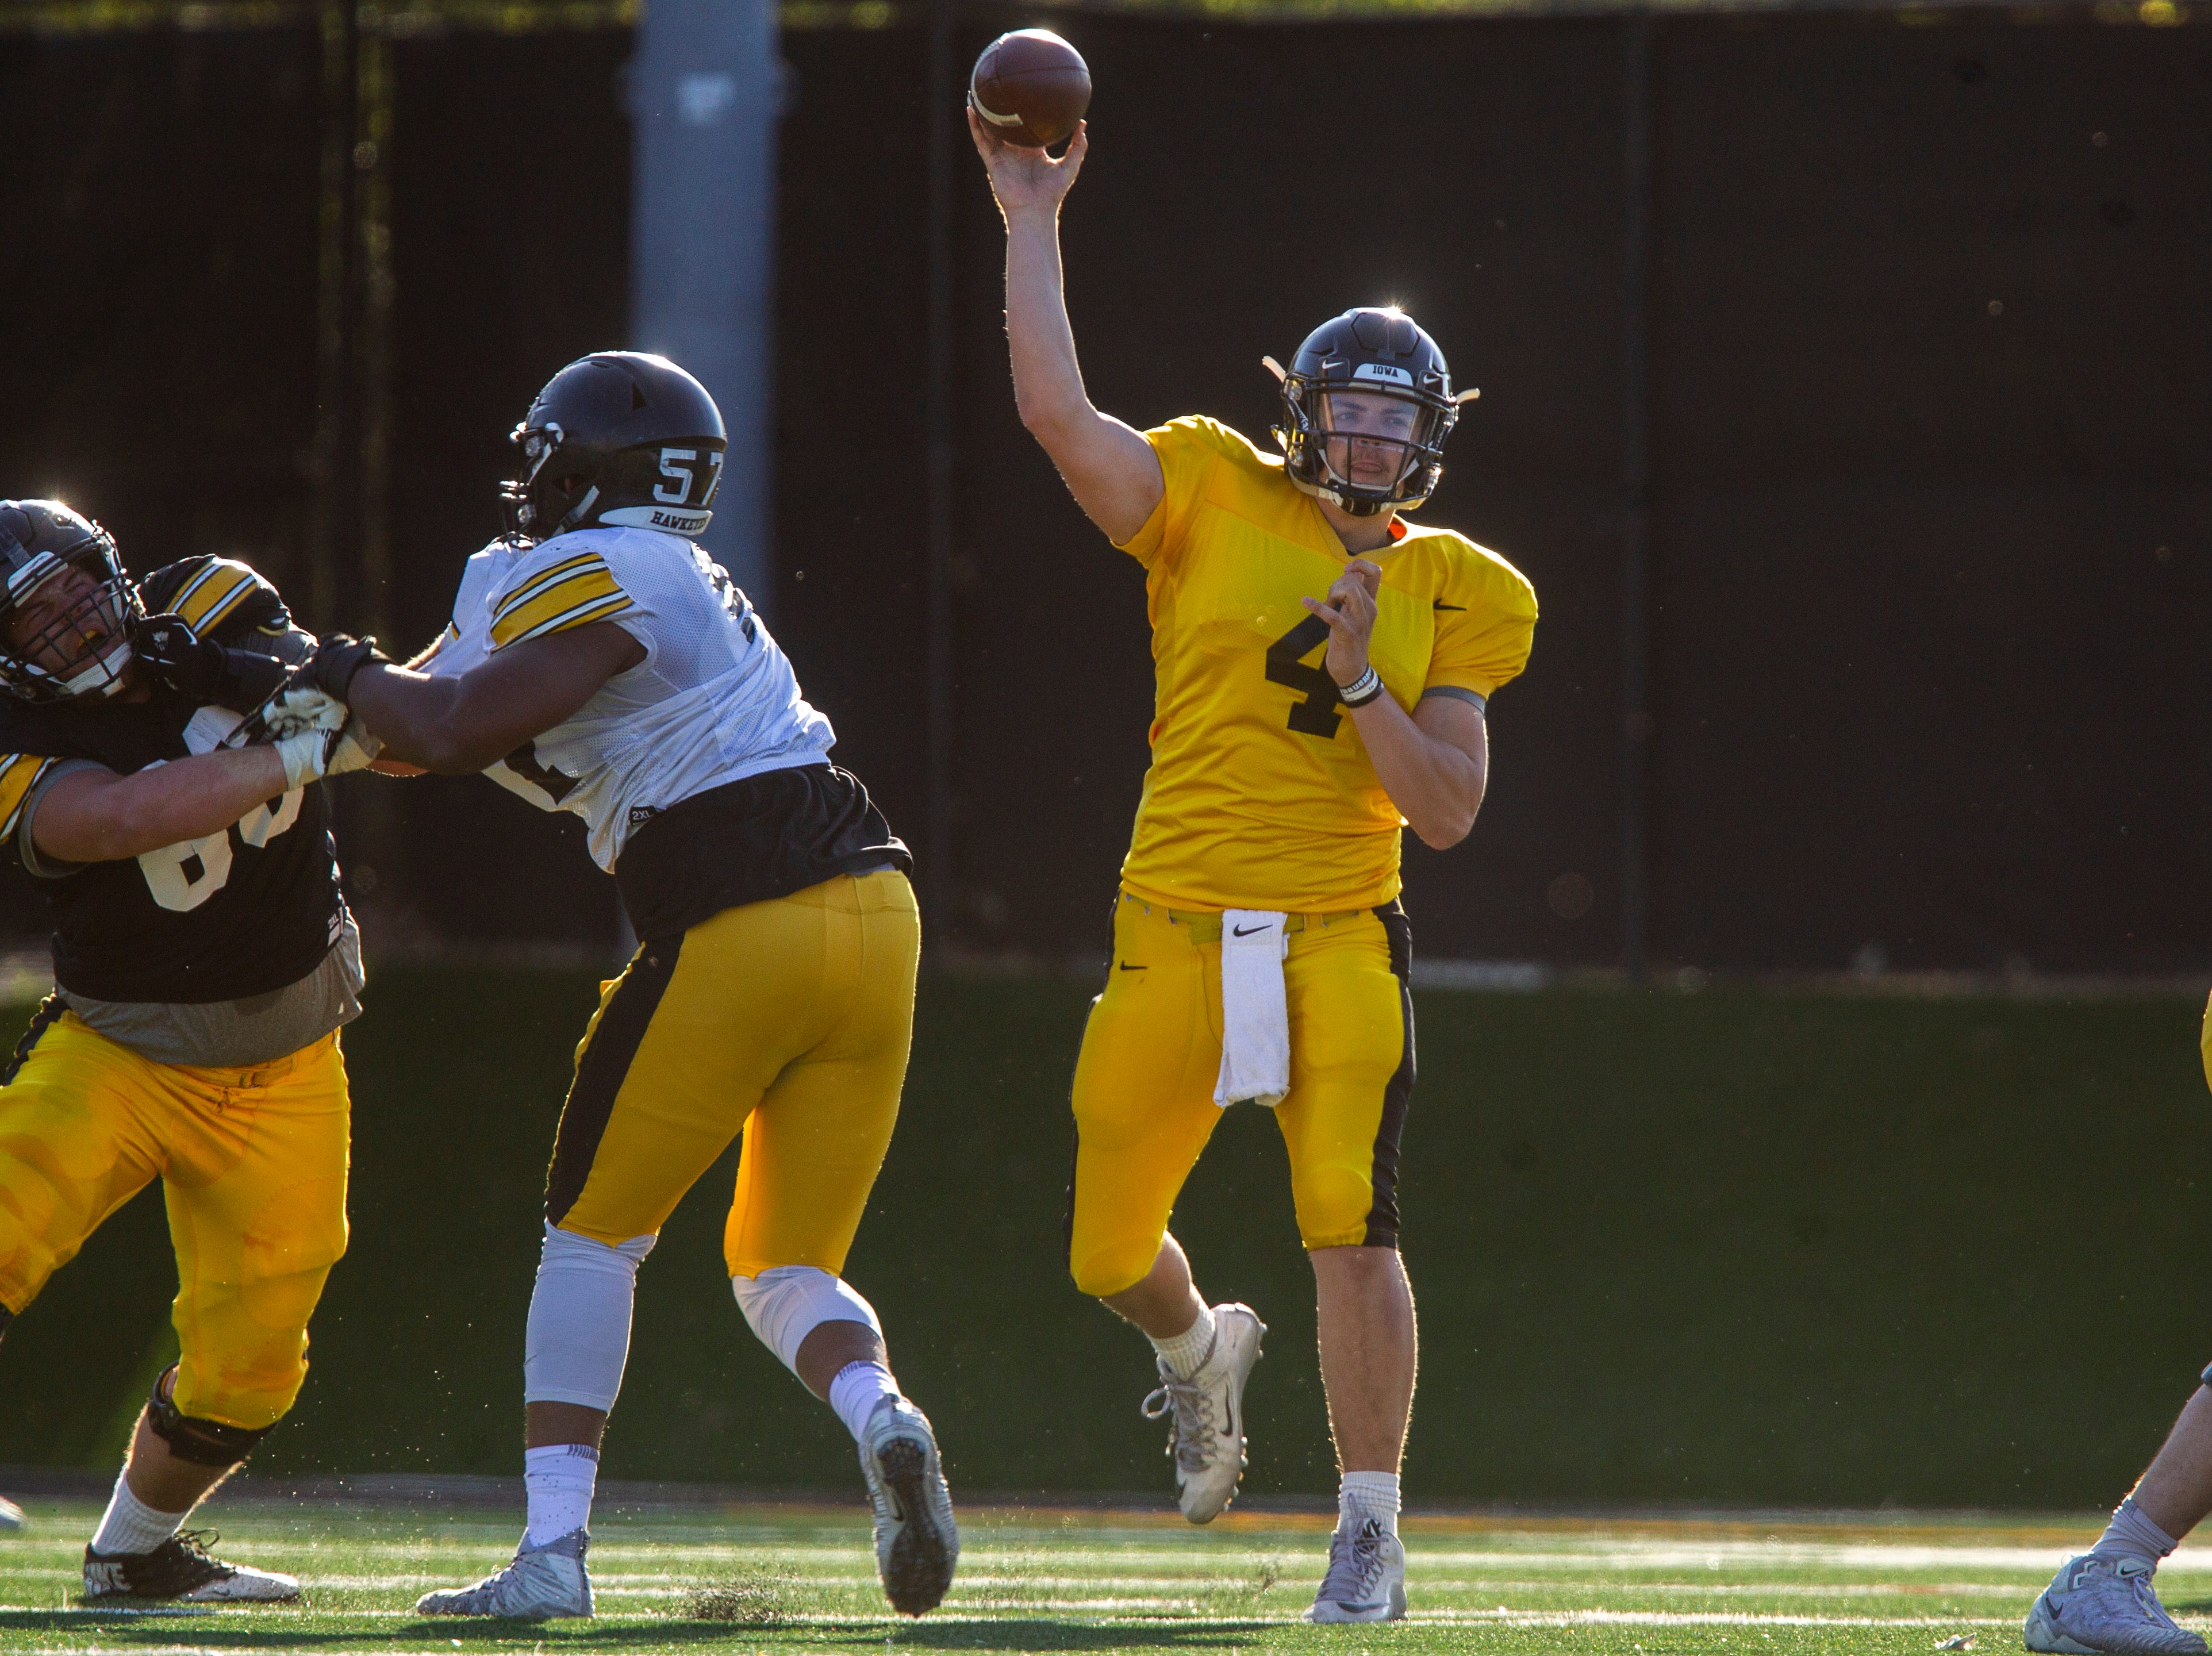 Iowa quarterback Nate Stanley (4) throws a pass as Levi Paulsen (66) blocks during the final spring football practice, Friday, April 26, 2019, at the University of Iowa outdoor practice facility in Iowa City, Iowa.